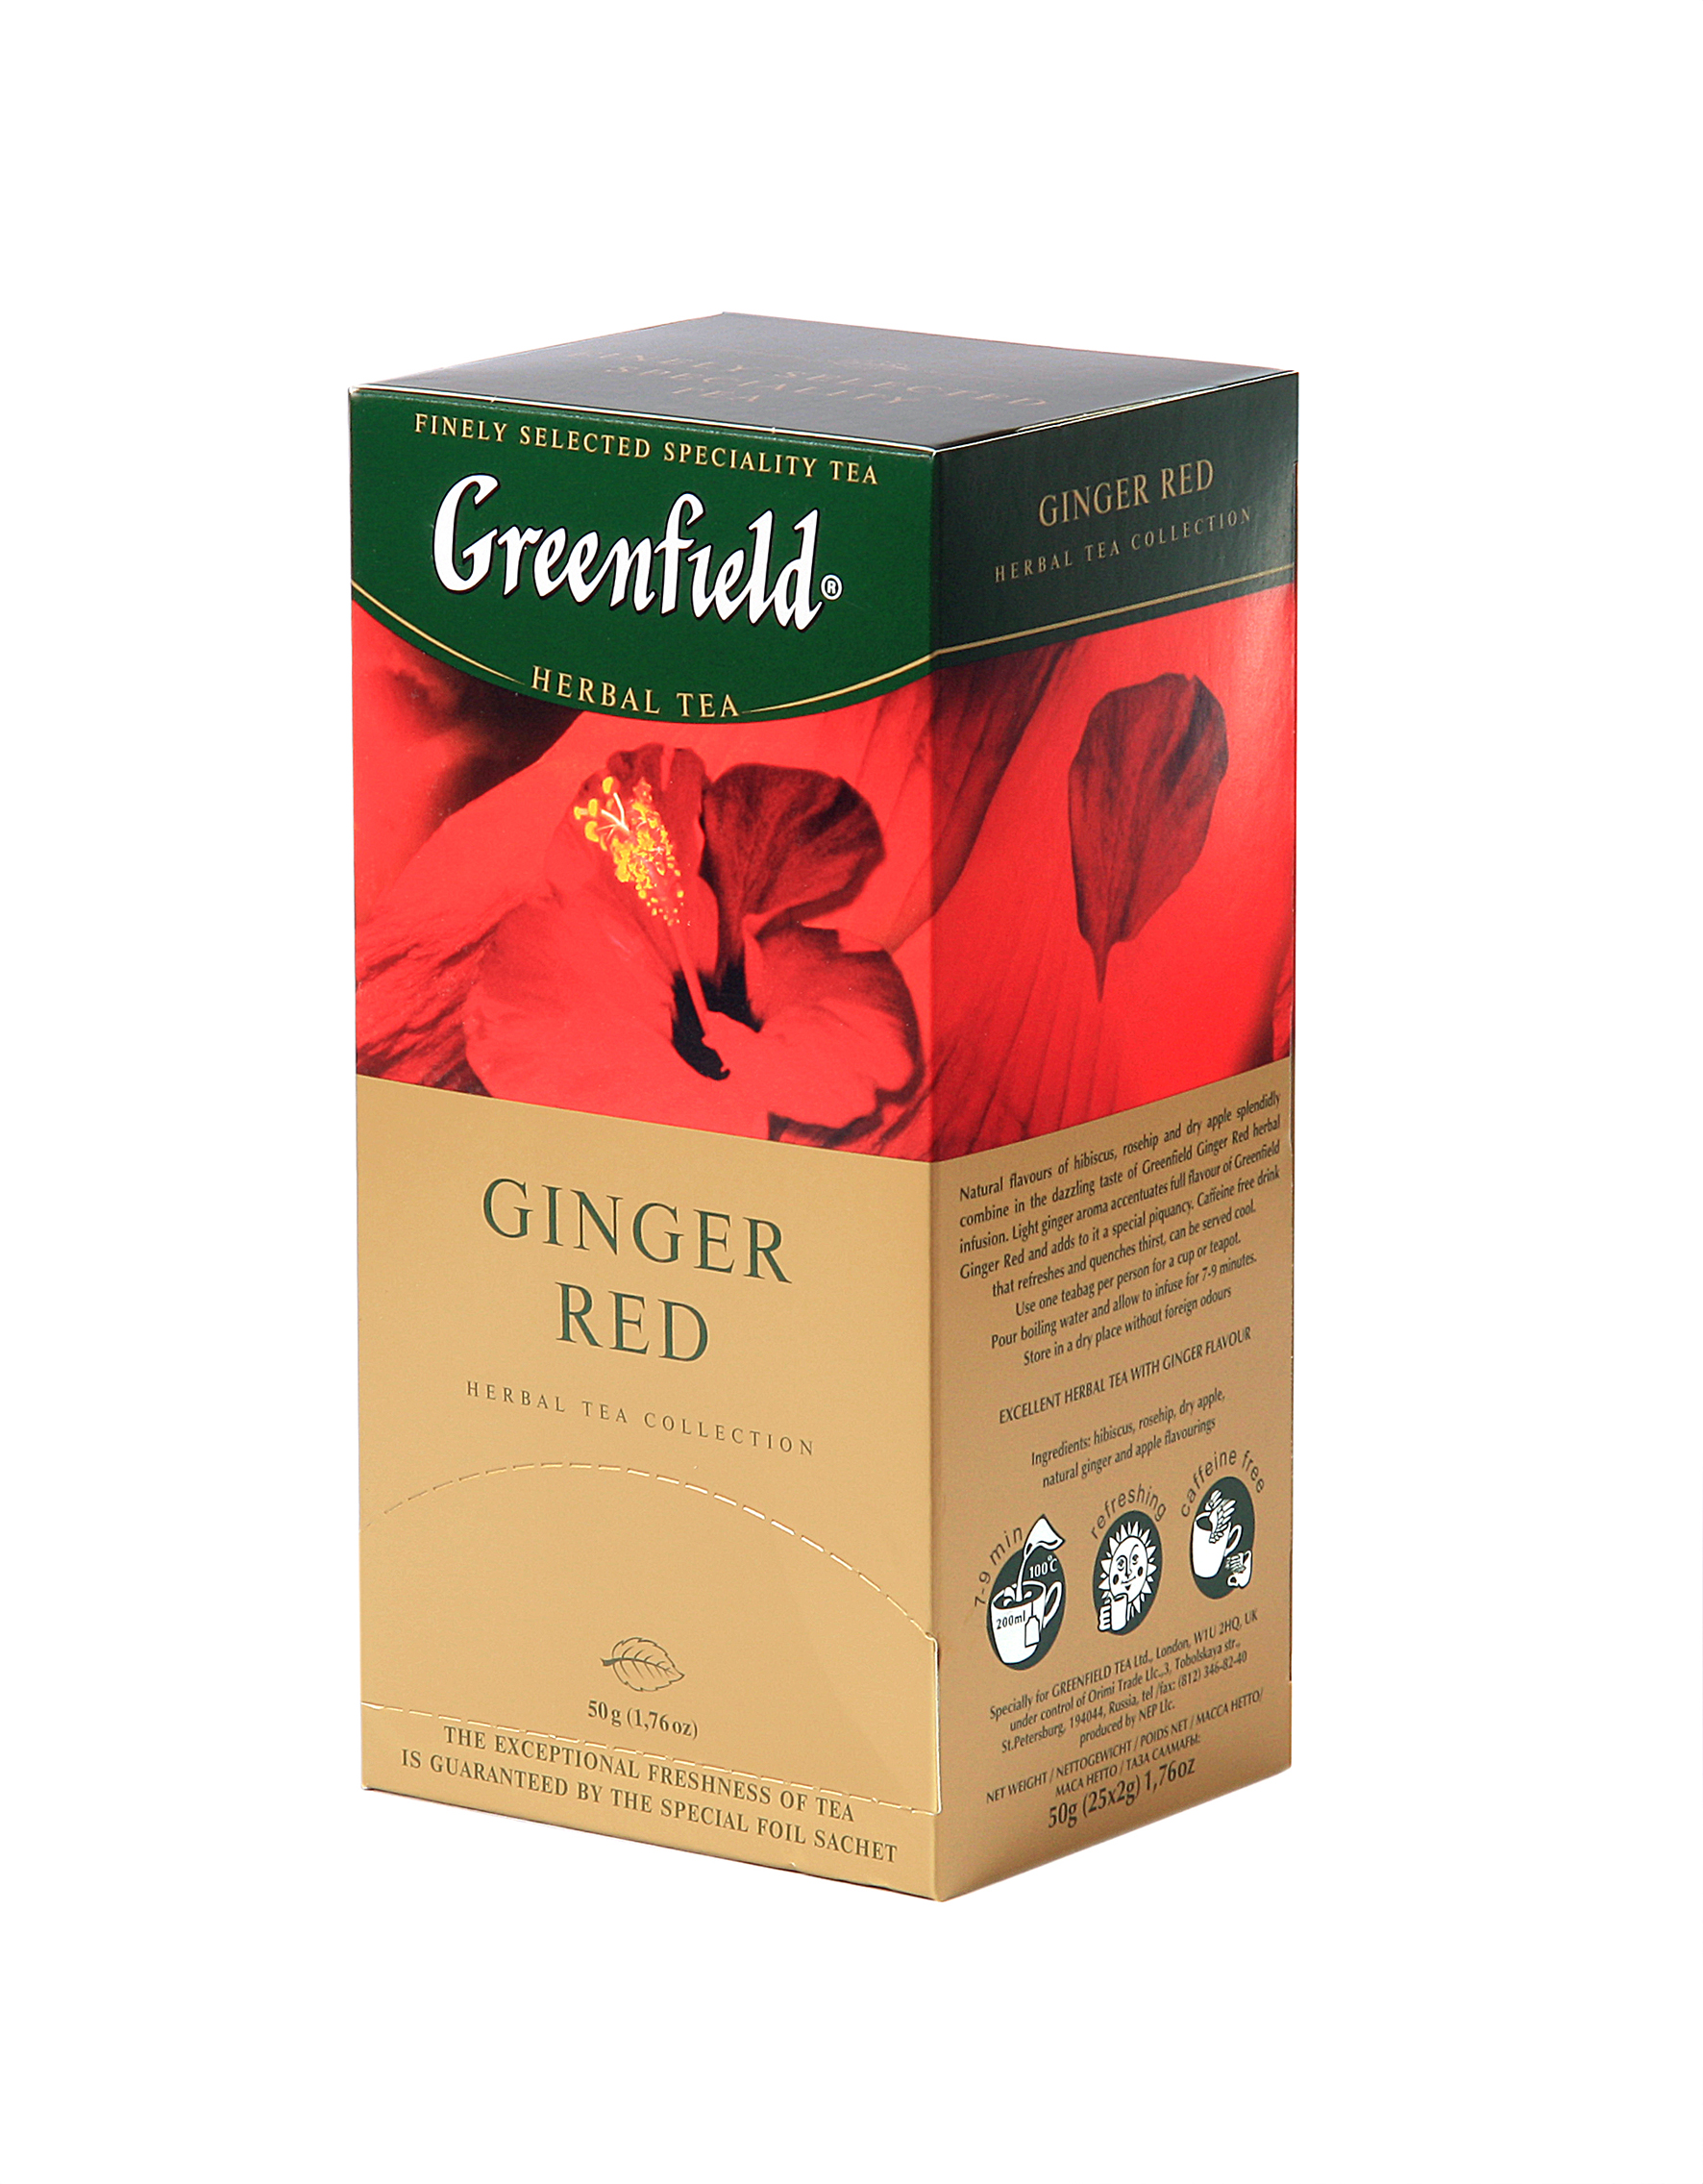 Ginder red Greenfield